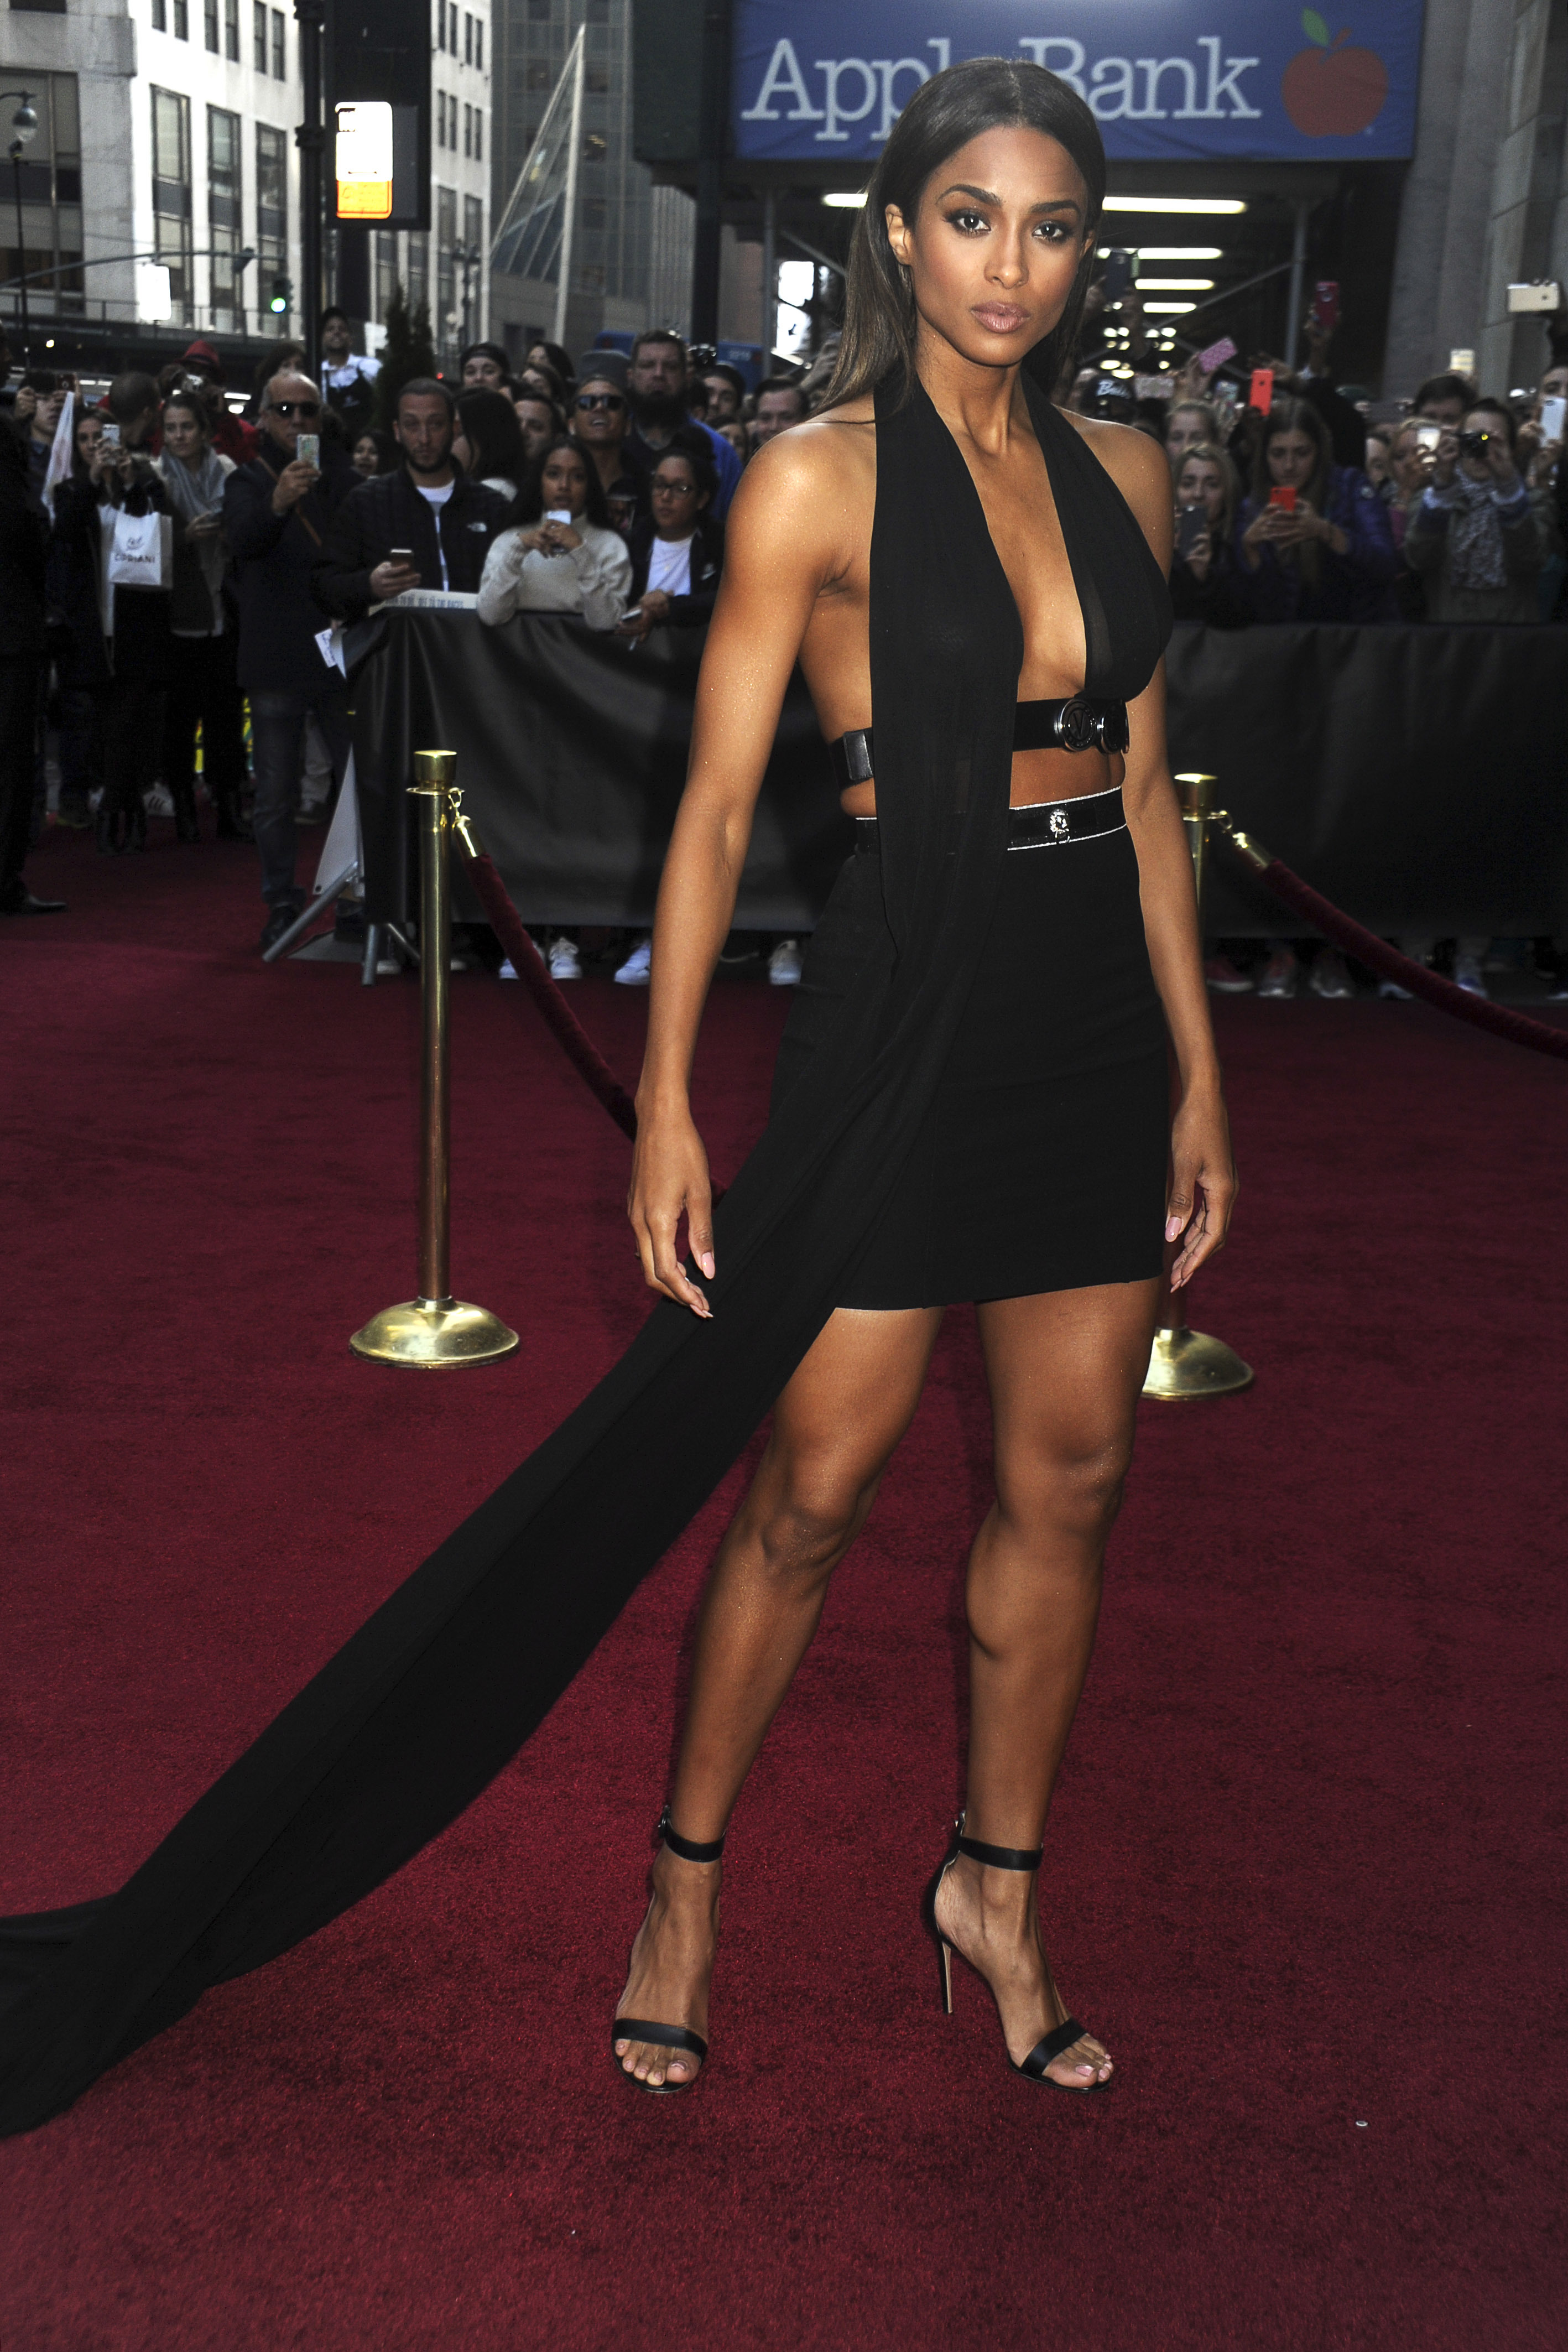 Ciara steals the spotlight in a barely-there miniskirt at